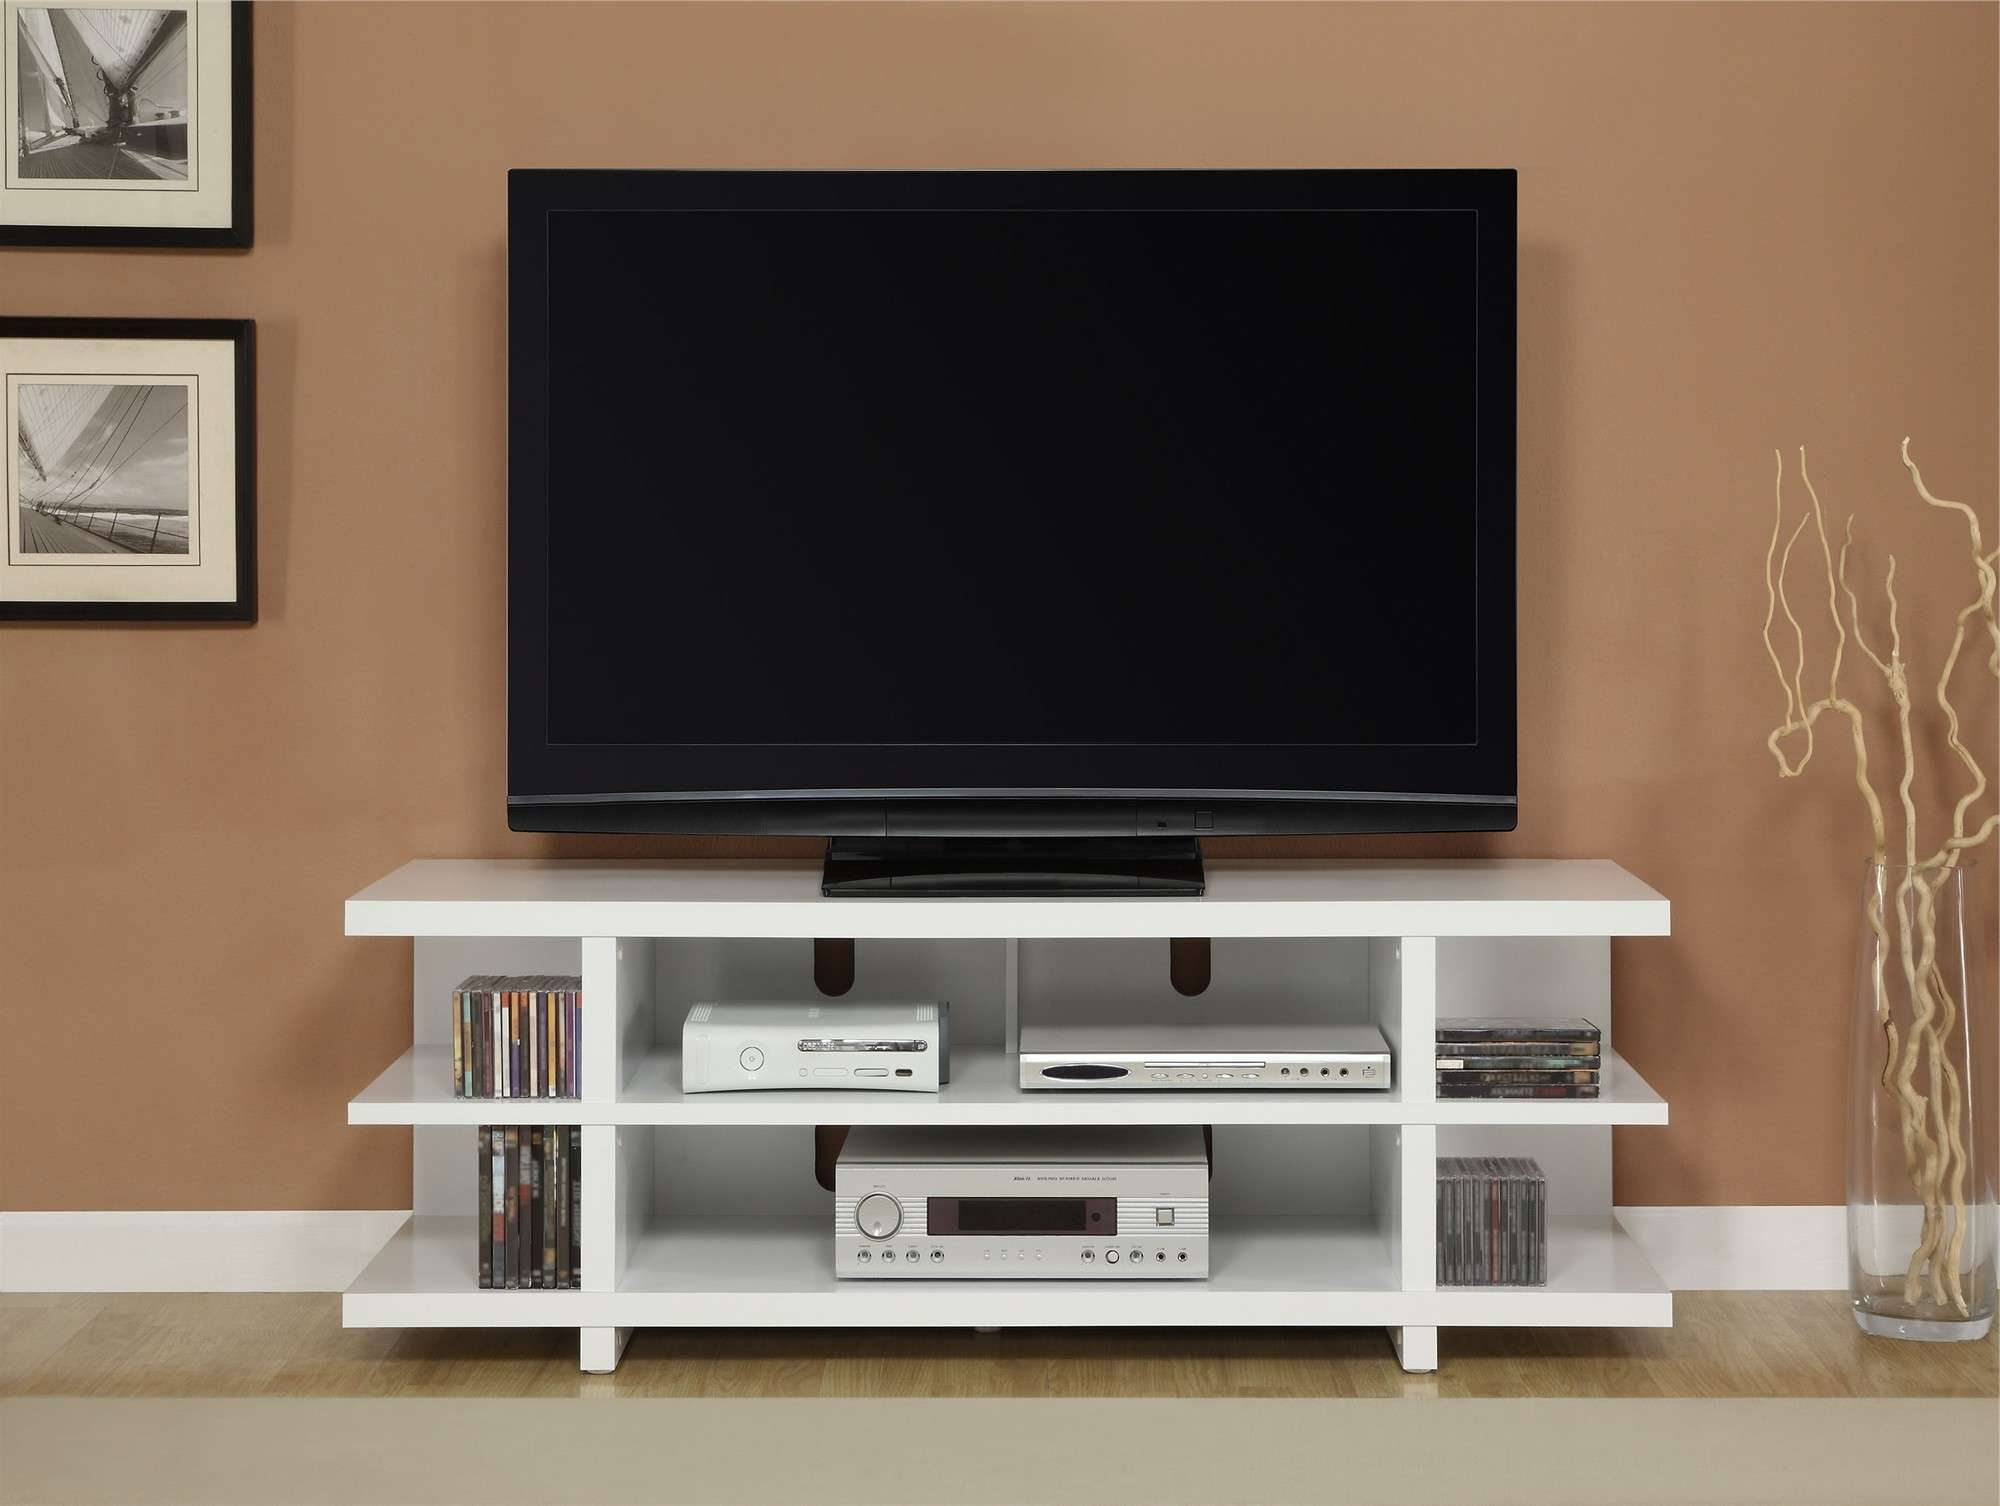 White Stained Wooden Tv Stand Having Several Open Shelves For With Regard To Wooden Tv Stands For Flat Screens (View 8 of 15)